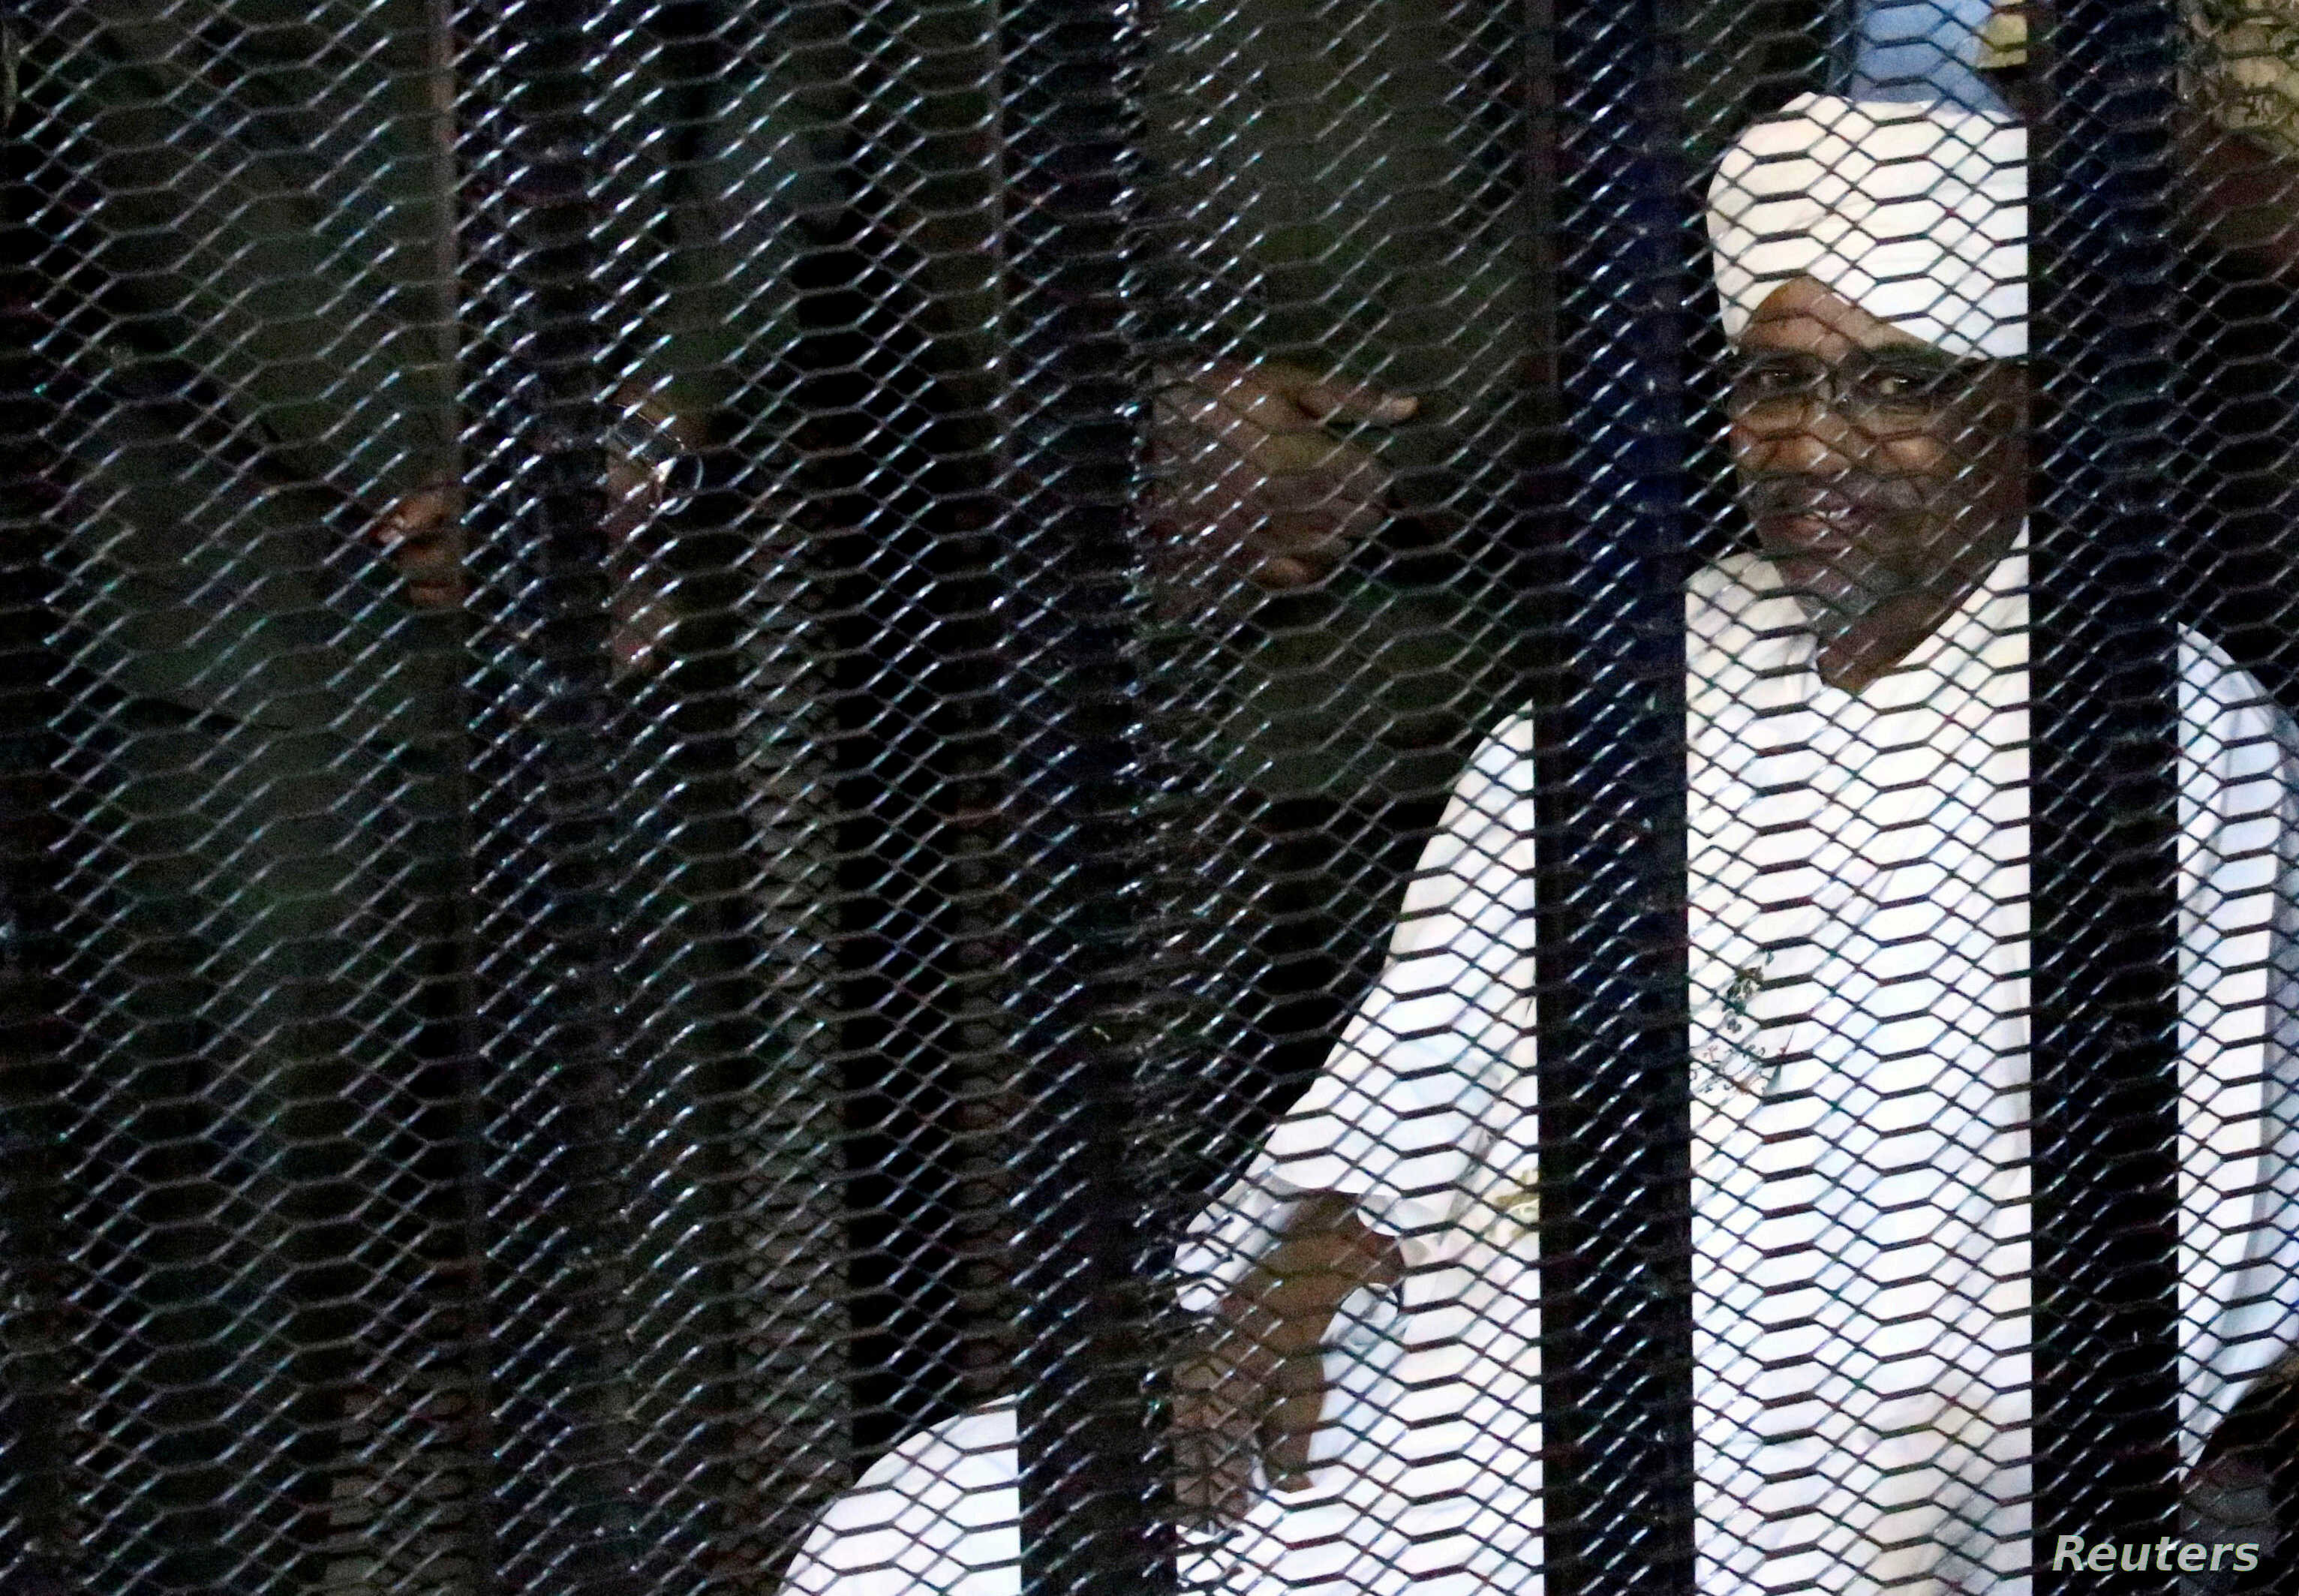 Sudan's ousted President, Omar al-Bashir faces death sentence over 1989 coup that brought him to power